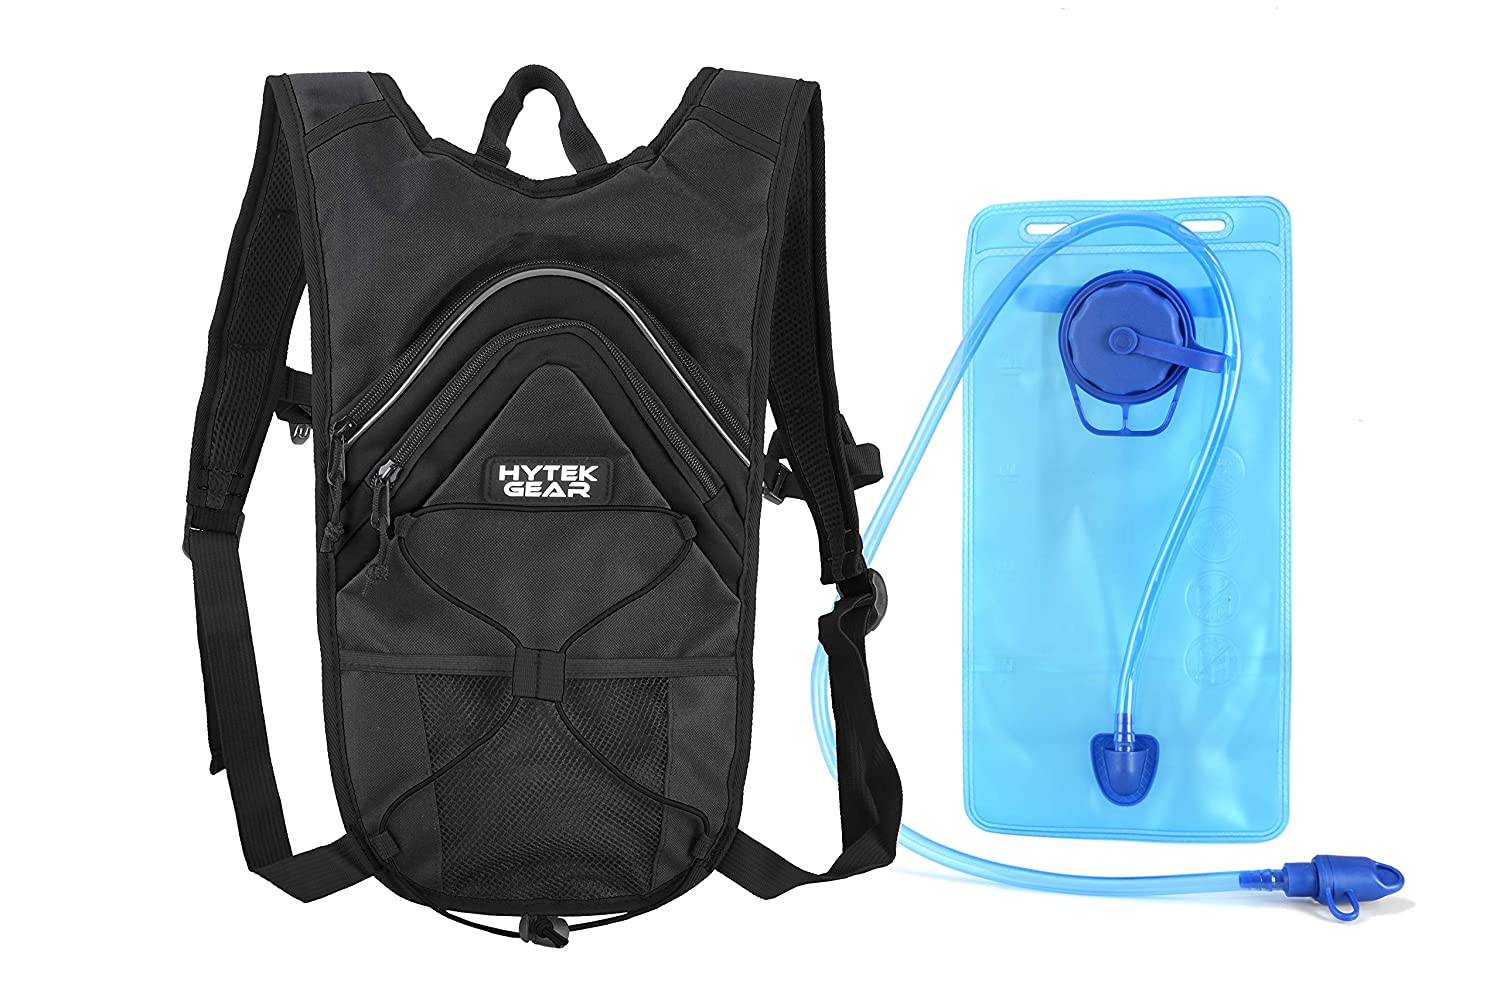 Amazon.com : Hytek Gear Hydration Backpack - Hydration Pack (Black) : Sports & Outdoors